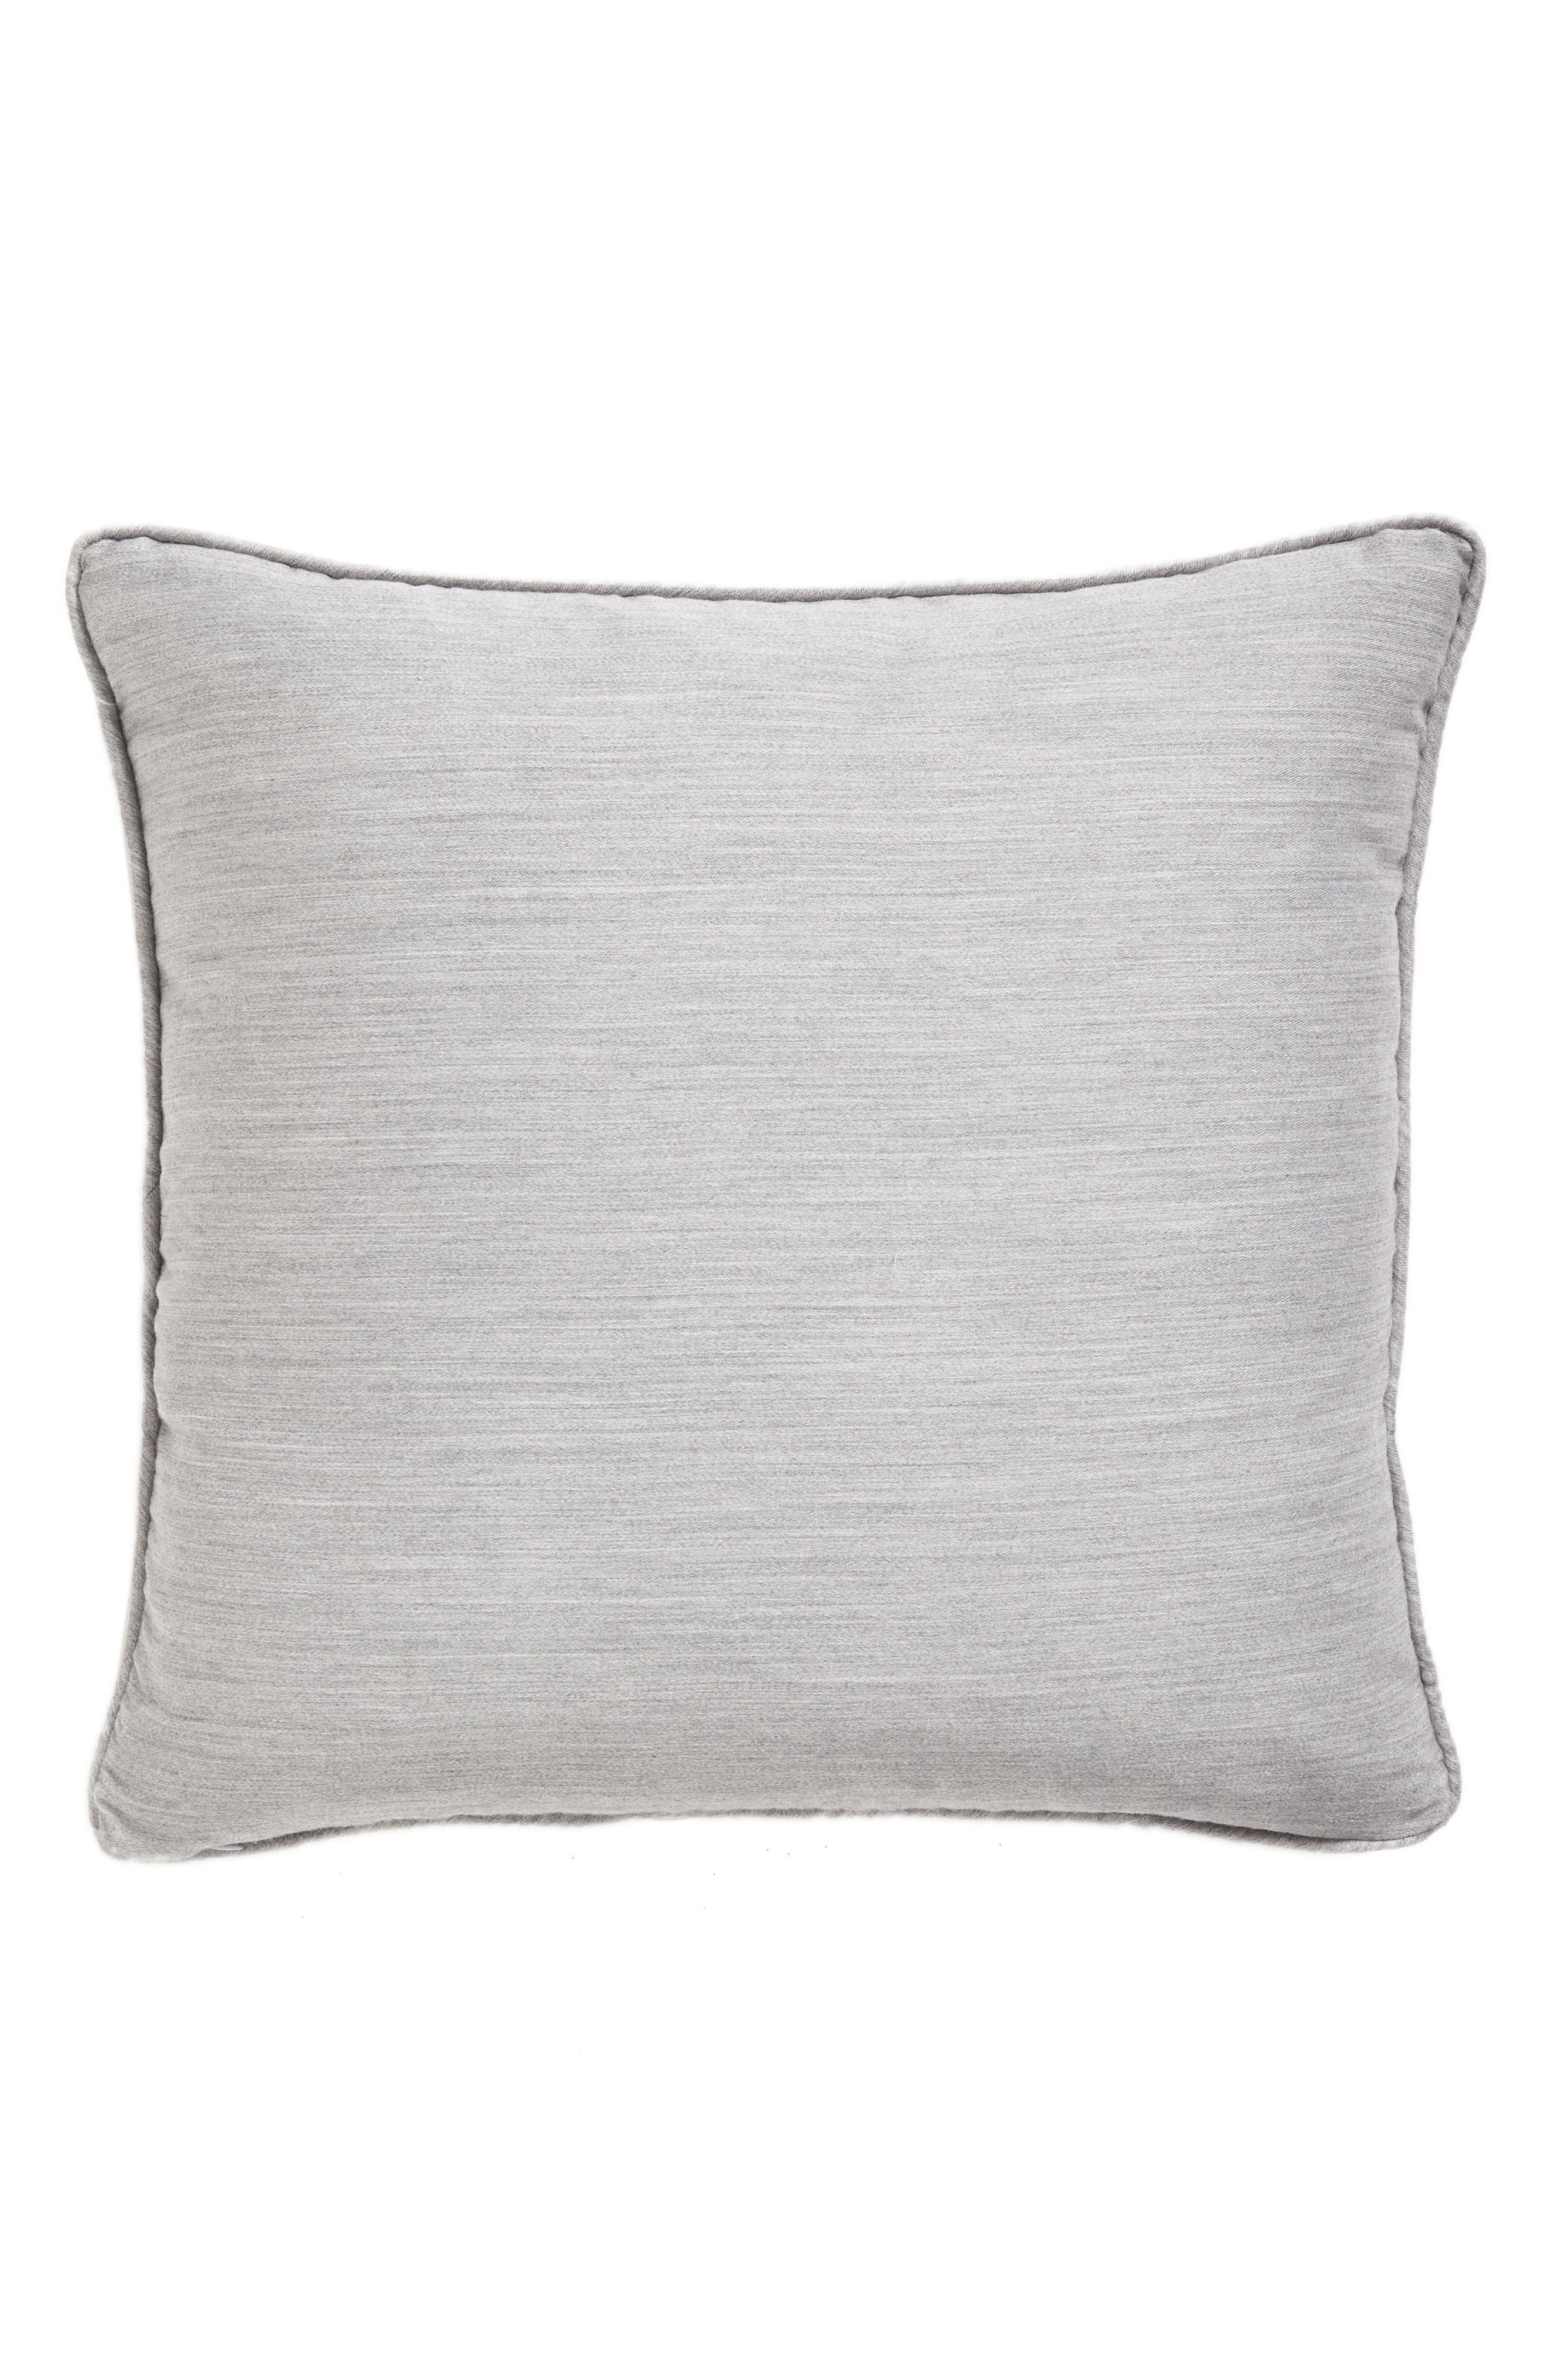 Alternate Image 1 Selected - SFERRA Brione Accent Pillow